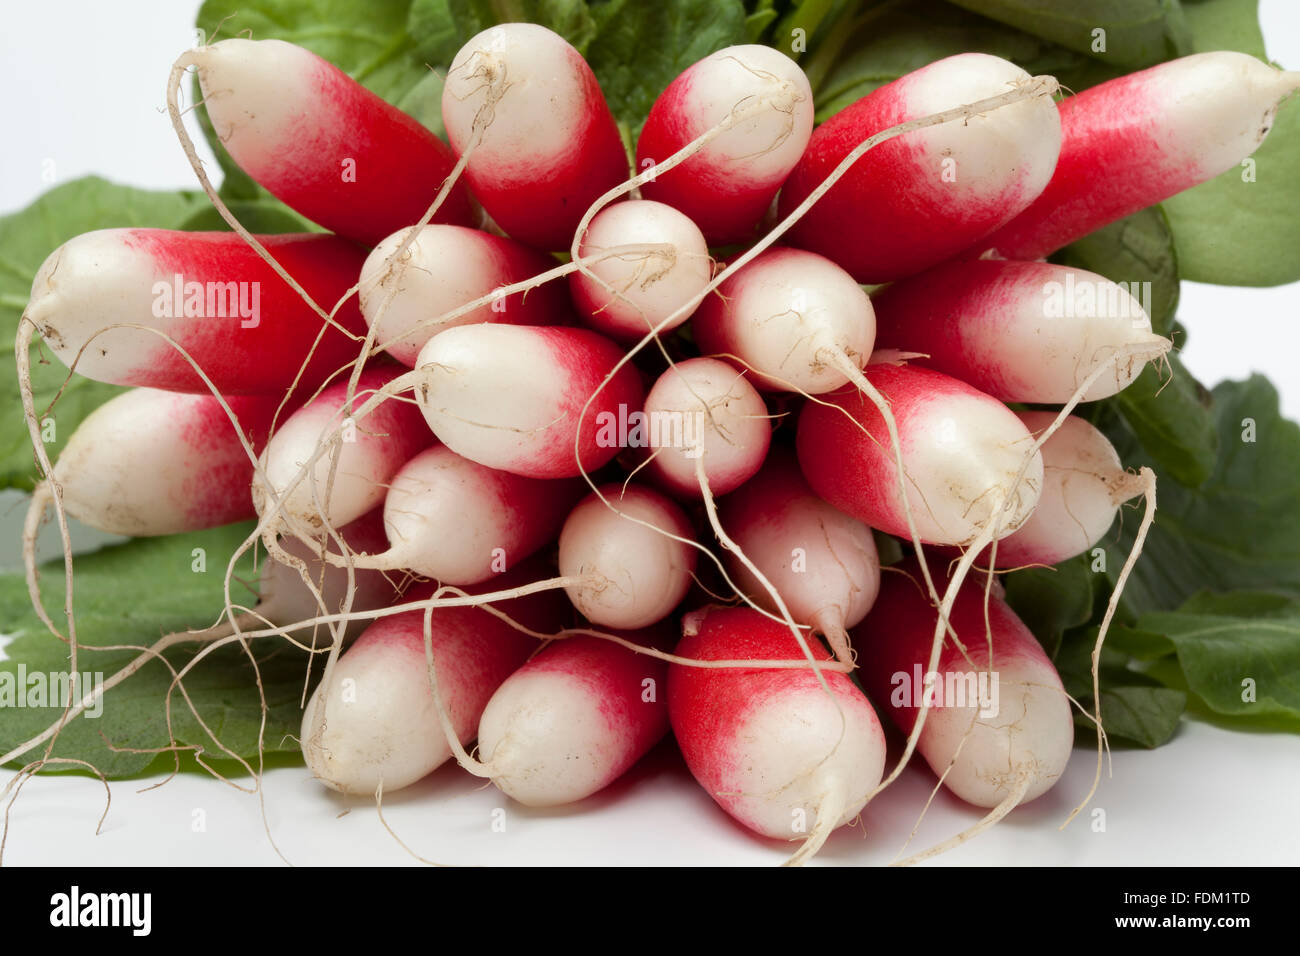 Fresh oval red and white Radish on white background - Stock Image